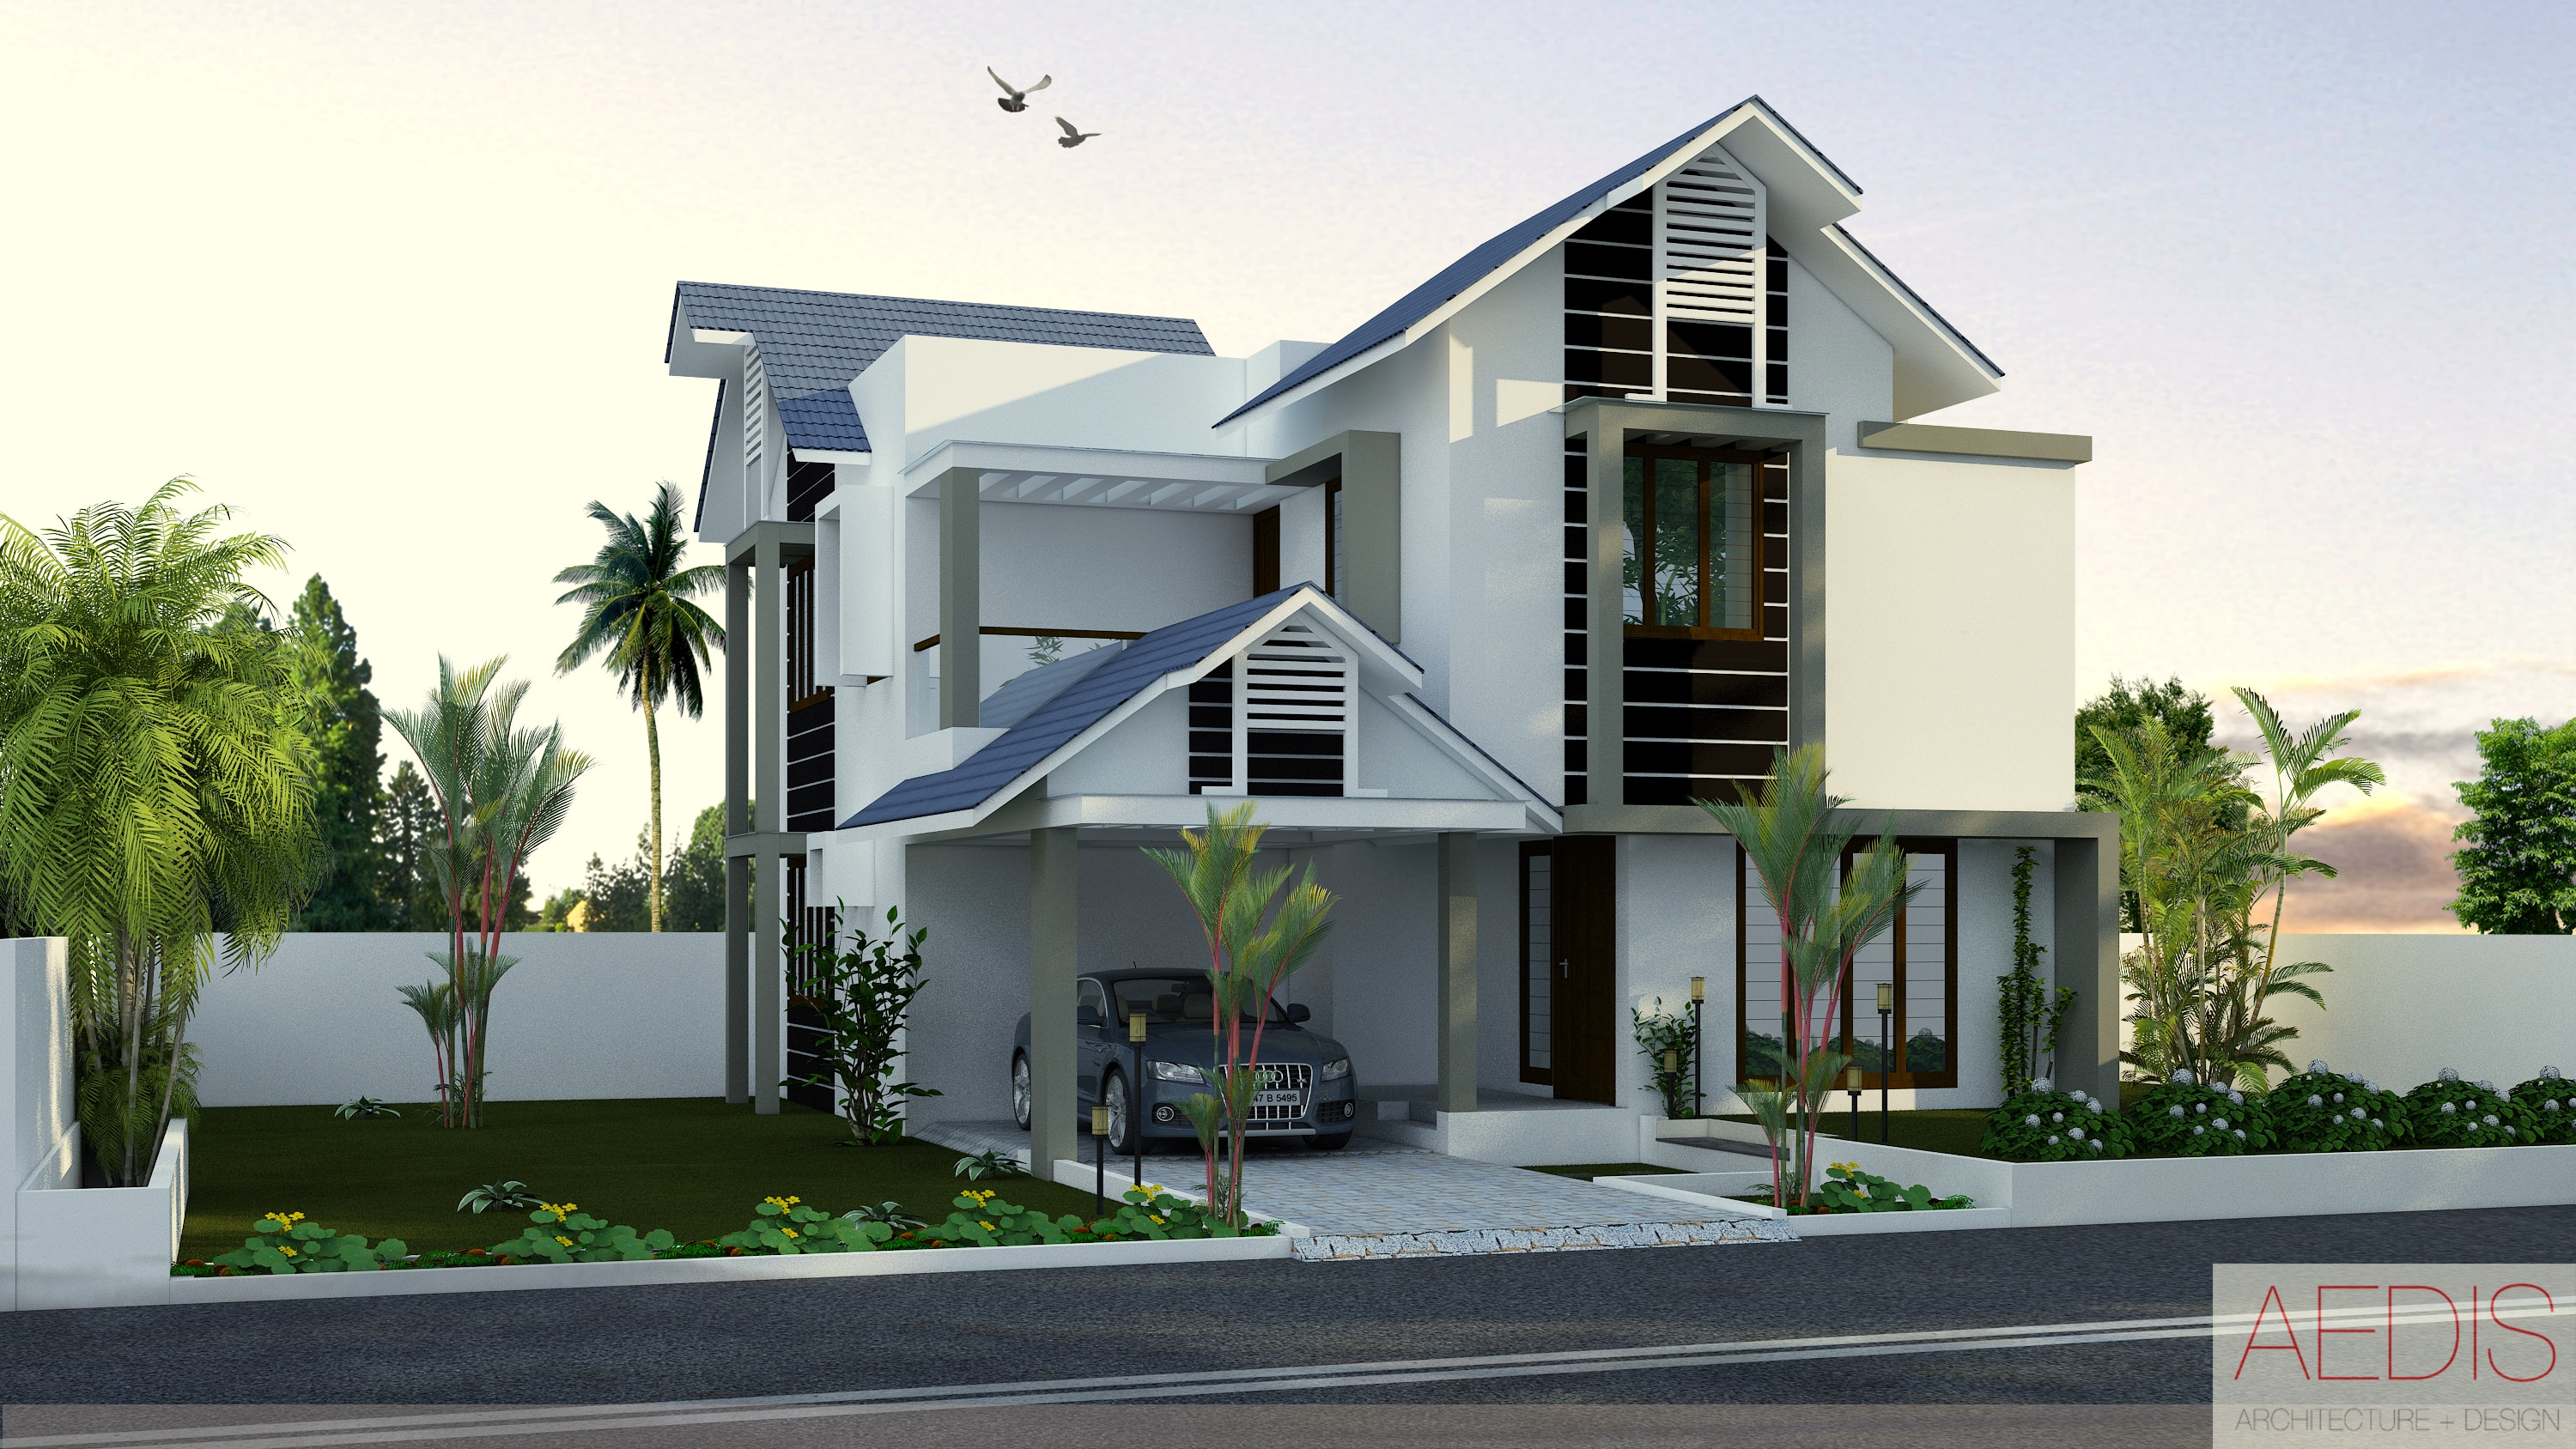 We provide kerala style house designs kerala home designs for Classic house design ideas